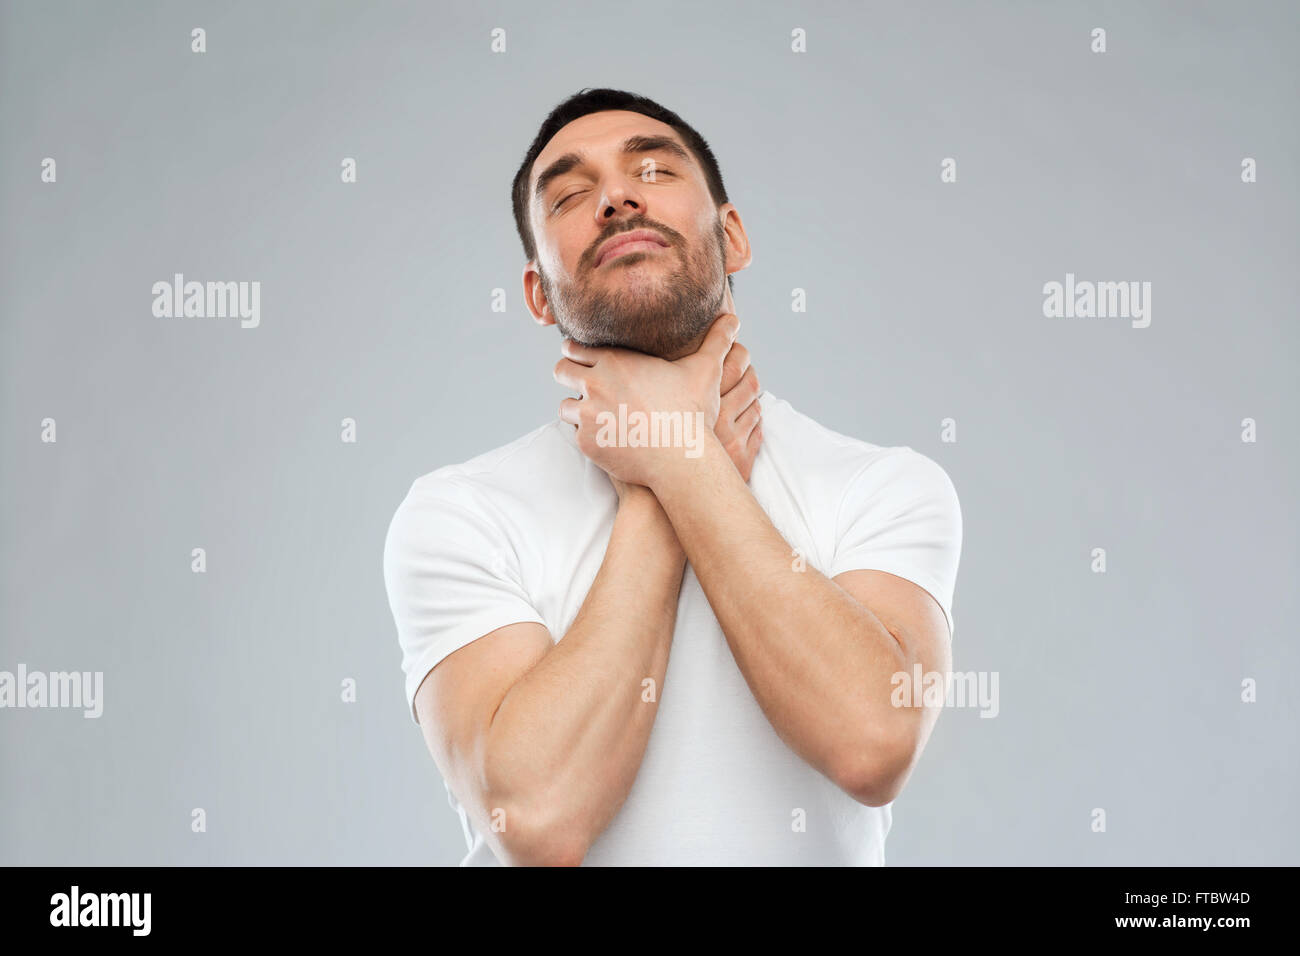 young man choking himself over gray background - Stock Image